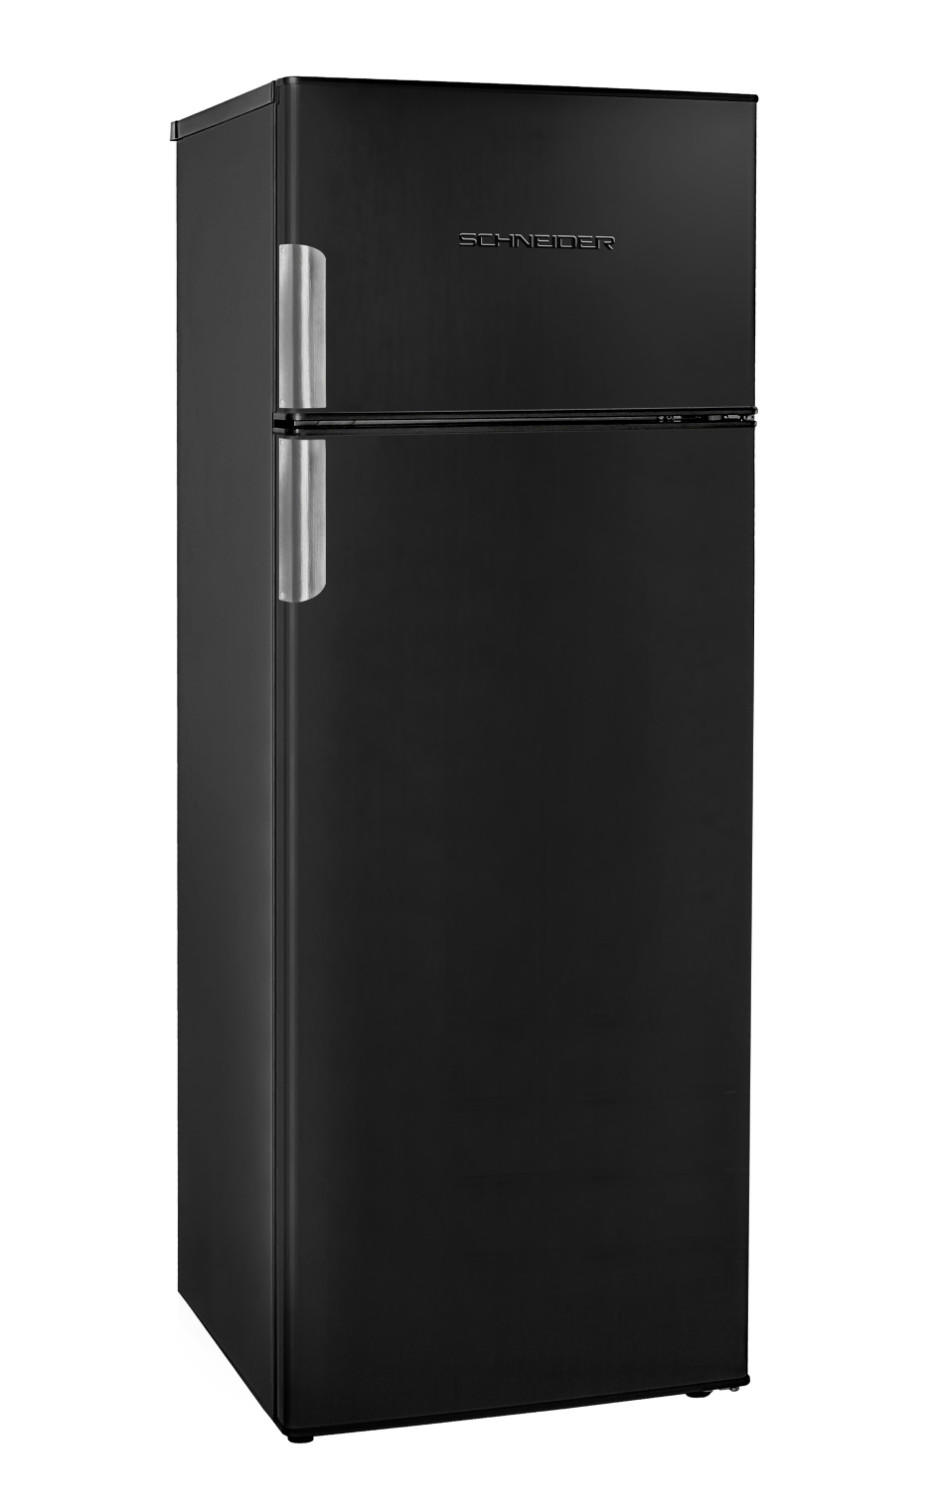 Refrigerator with 2 doors in black matte 208 L - Schneider